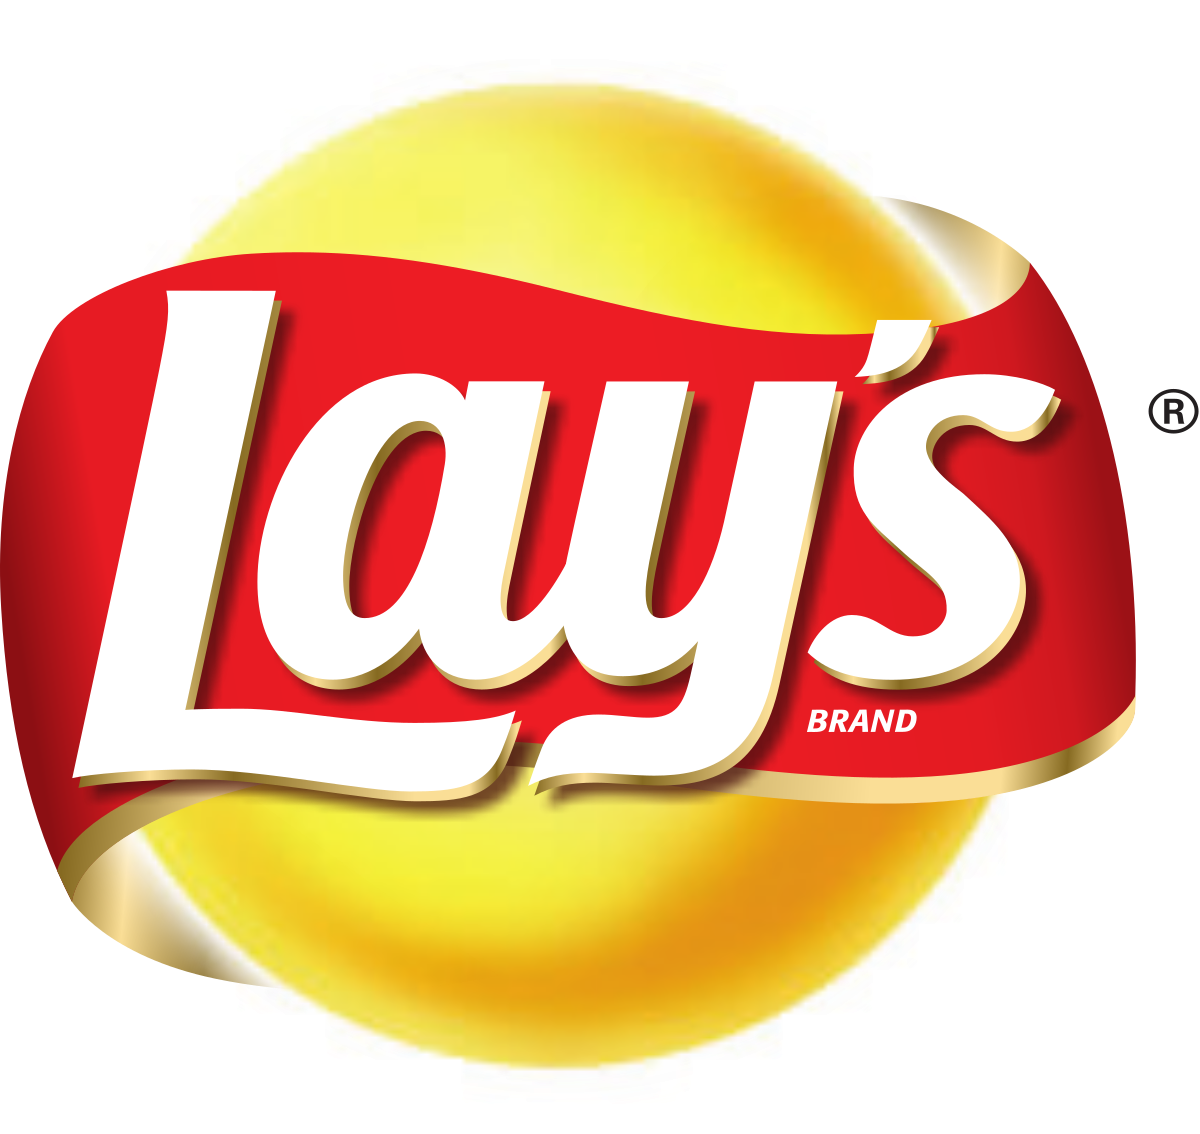 Image Result For Lays Logo Lays Potato Chips Potato Chips Kettle Cooked Chips